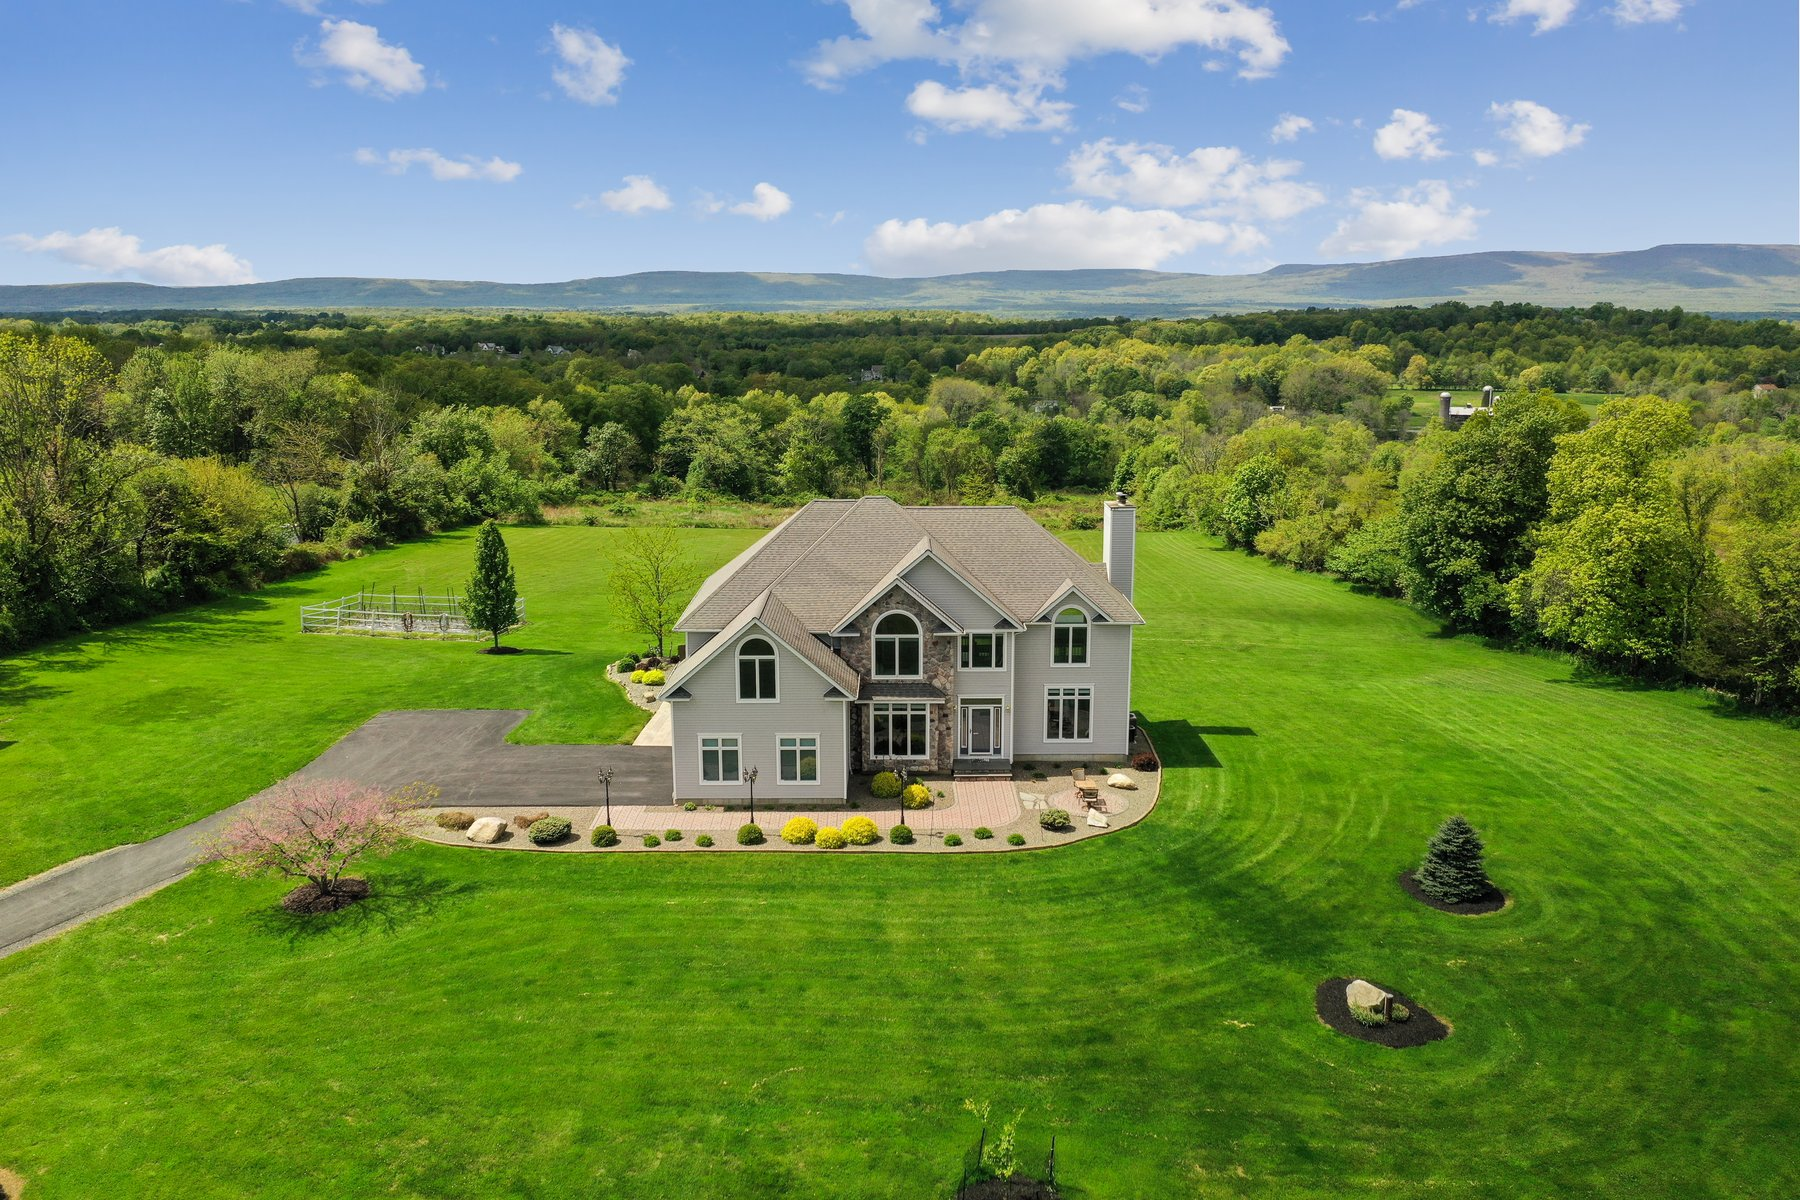 Single Family Homes for Sale at Scenic Tranquility 144 Meadowood Rd. Montgomery, New York 12549 United States